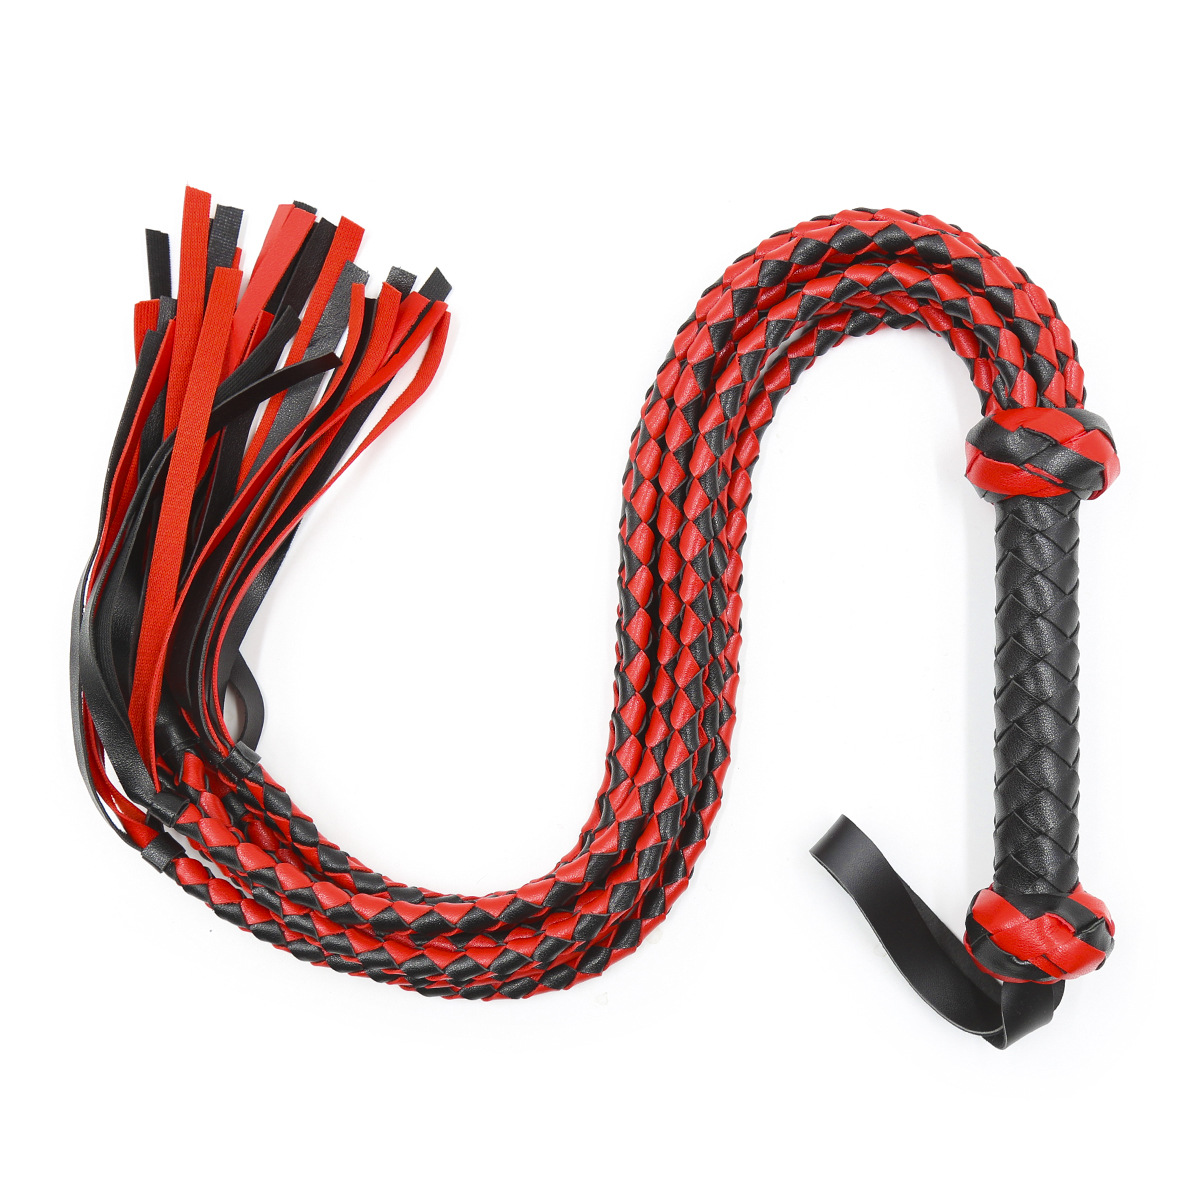 Fetish Black&Red PU Leather Whip Flogger Handle Spanking Paddle Knout Flirt BDSM <font><b>Adult</b></font> <font><b>Game</b></font> Erotic <font><b>Sex</b></font> <font><b>Toys</b></font> <font><b>for</b></font> Women <font><b>Couples</b></font> image